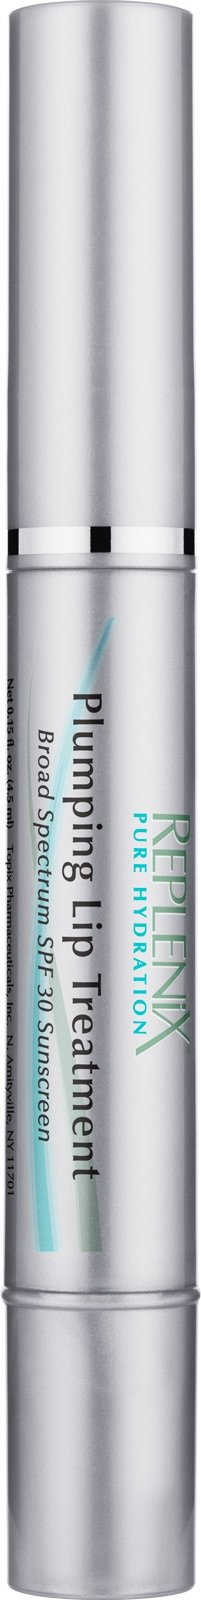 Replenix Lip Plumping Treatment Hydrates, Plumps and Protects - Lip Plumper by Replenix